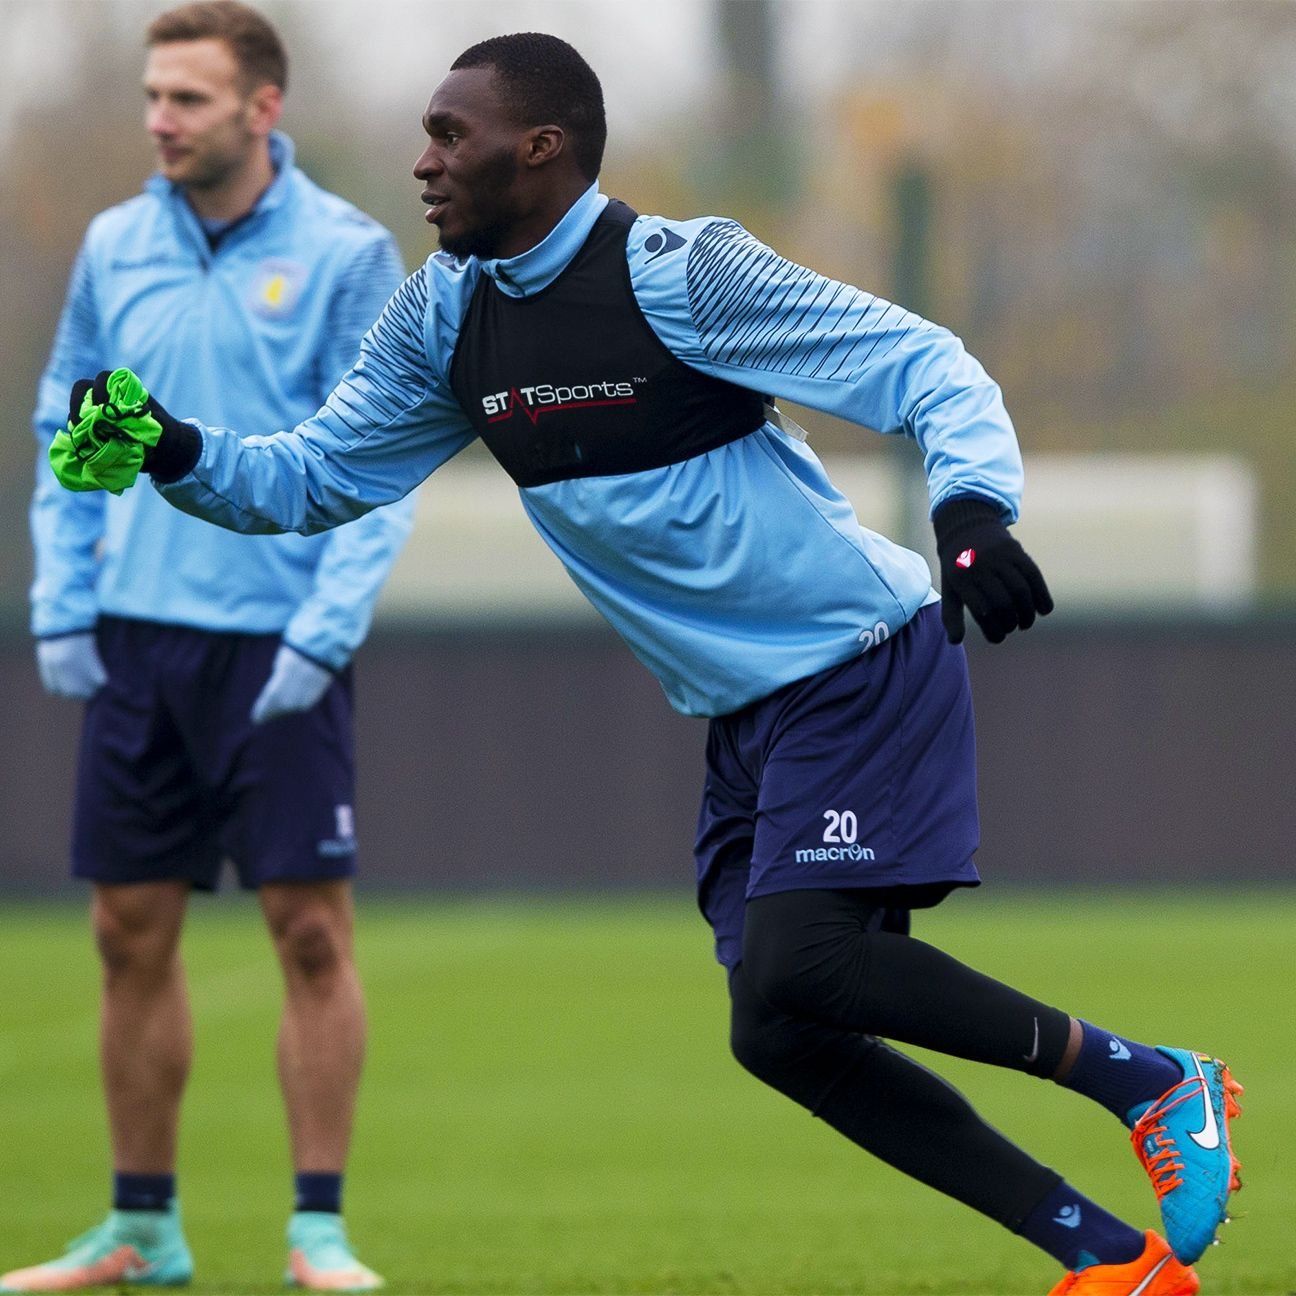 Christian Benteke's return from suspension is a blessing for an Aston Villa side starving for goals.